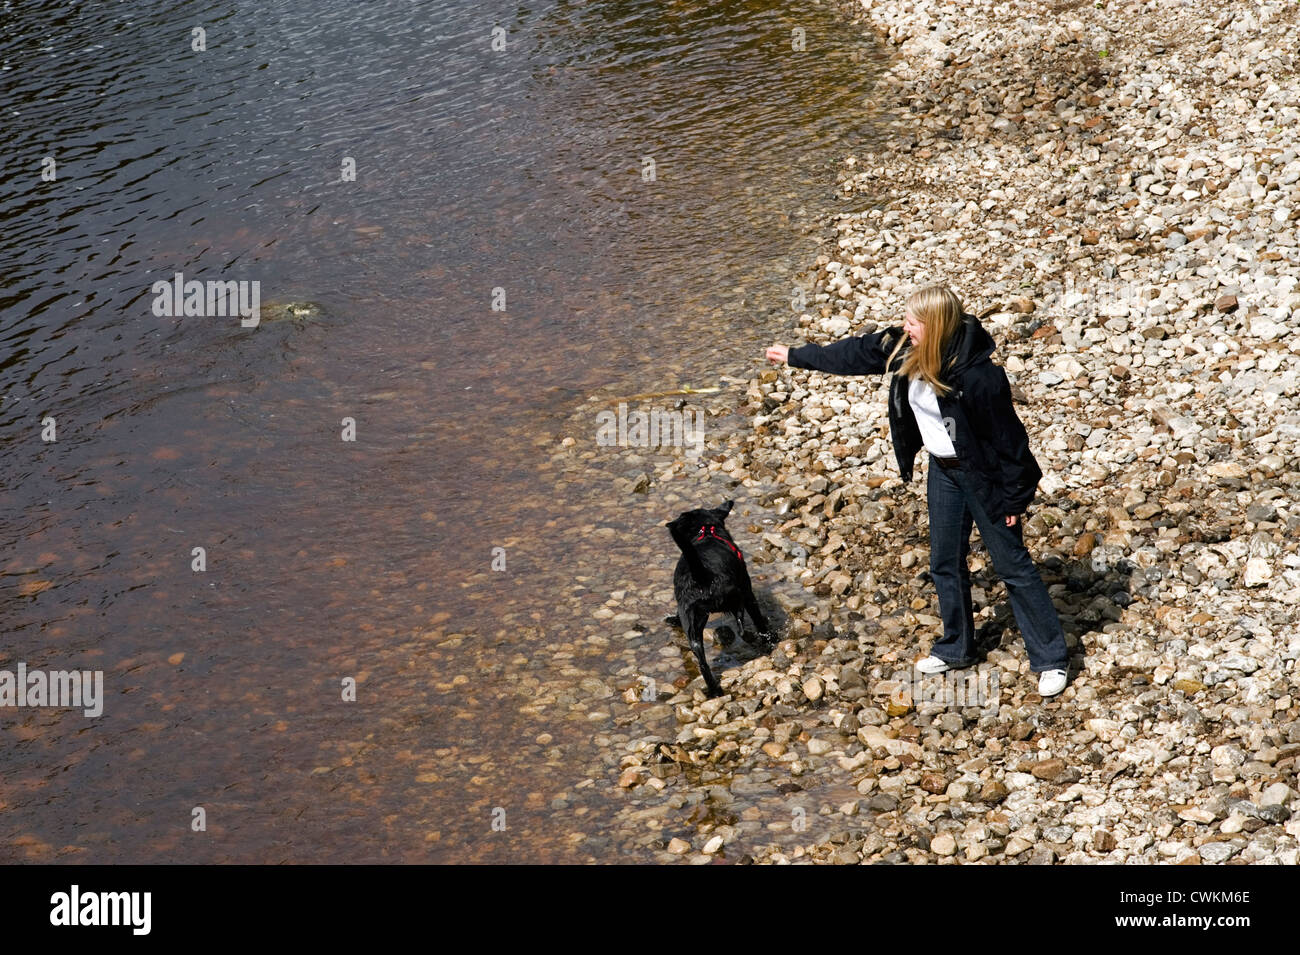 young woman on river bank throwing a stick into the water for her dog to retrieve - Stock Image